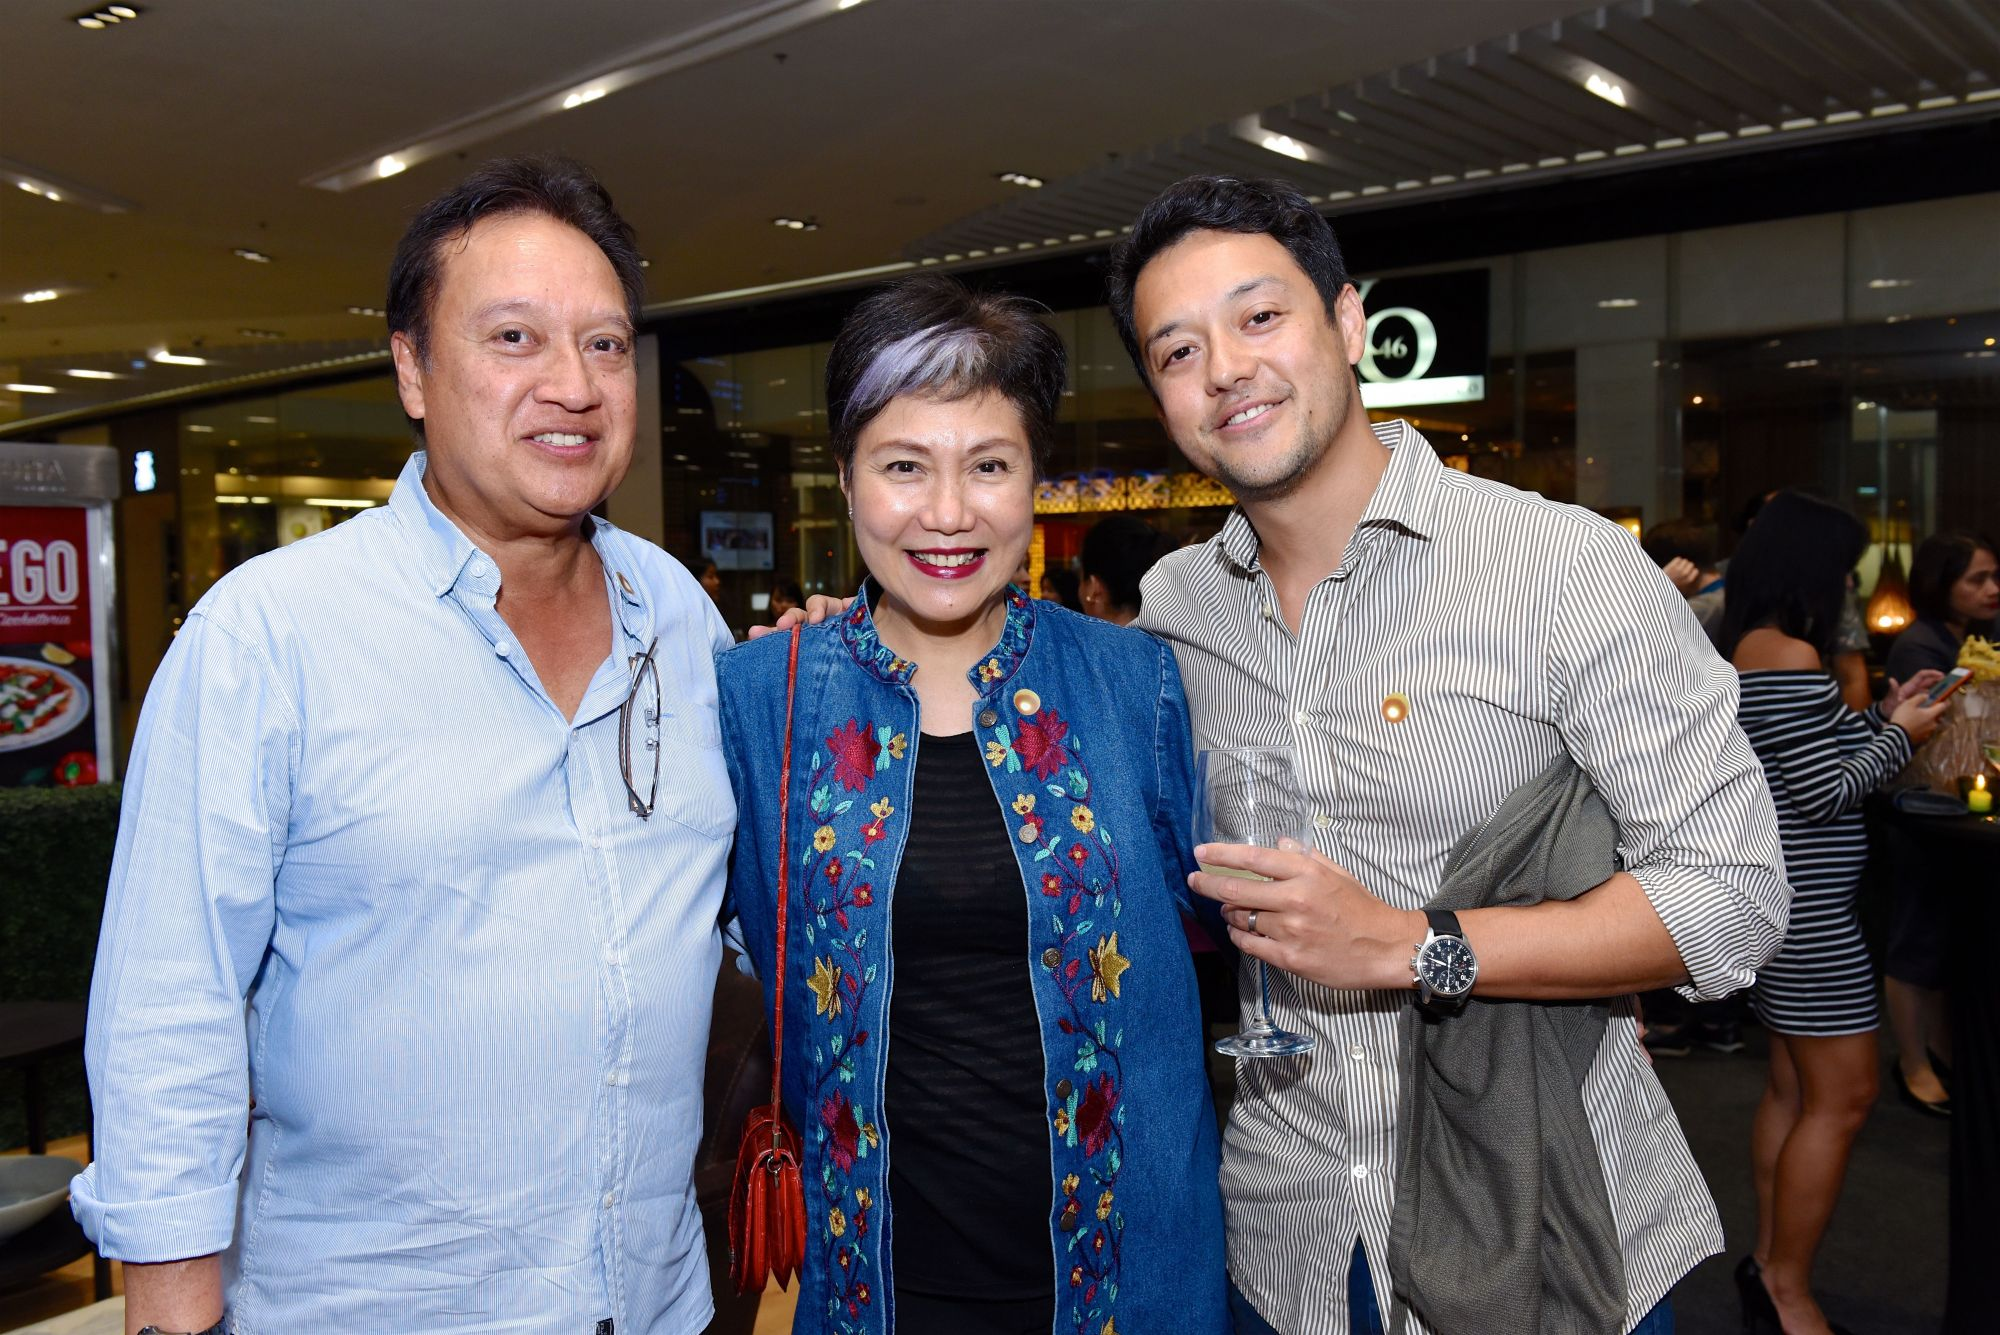 Butch and Ginny De Guzman with Martin De Guzman